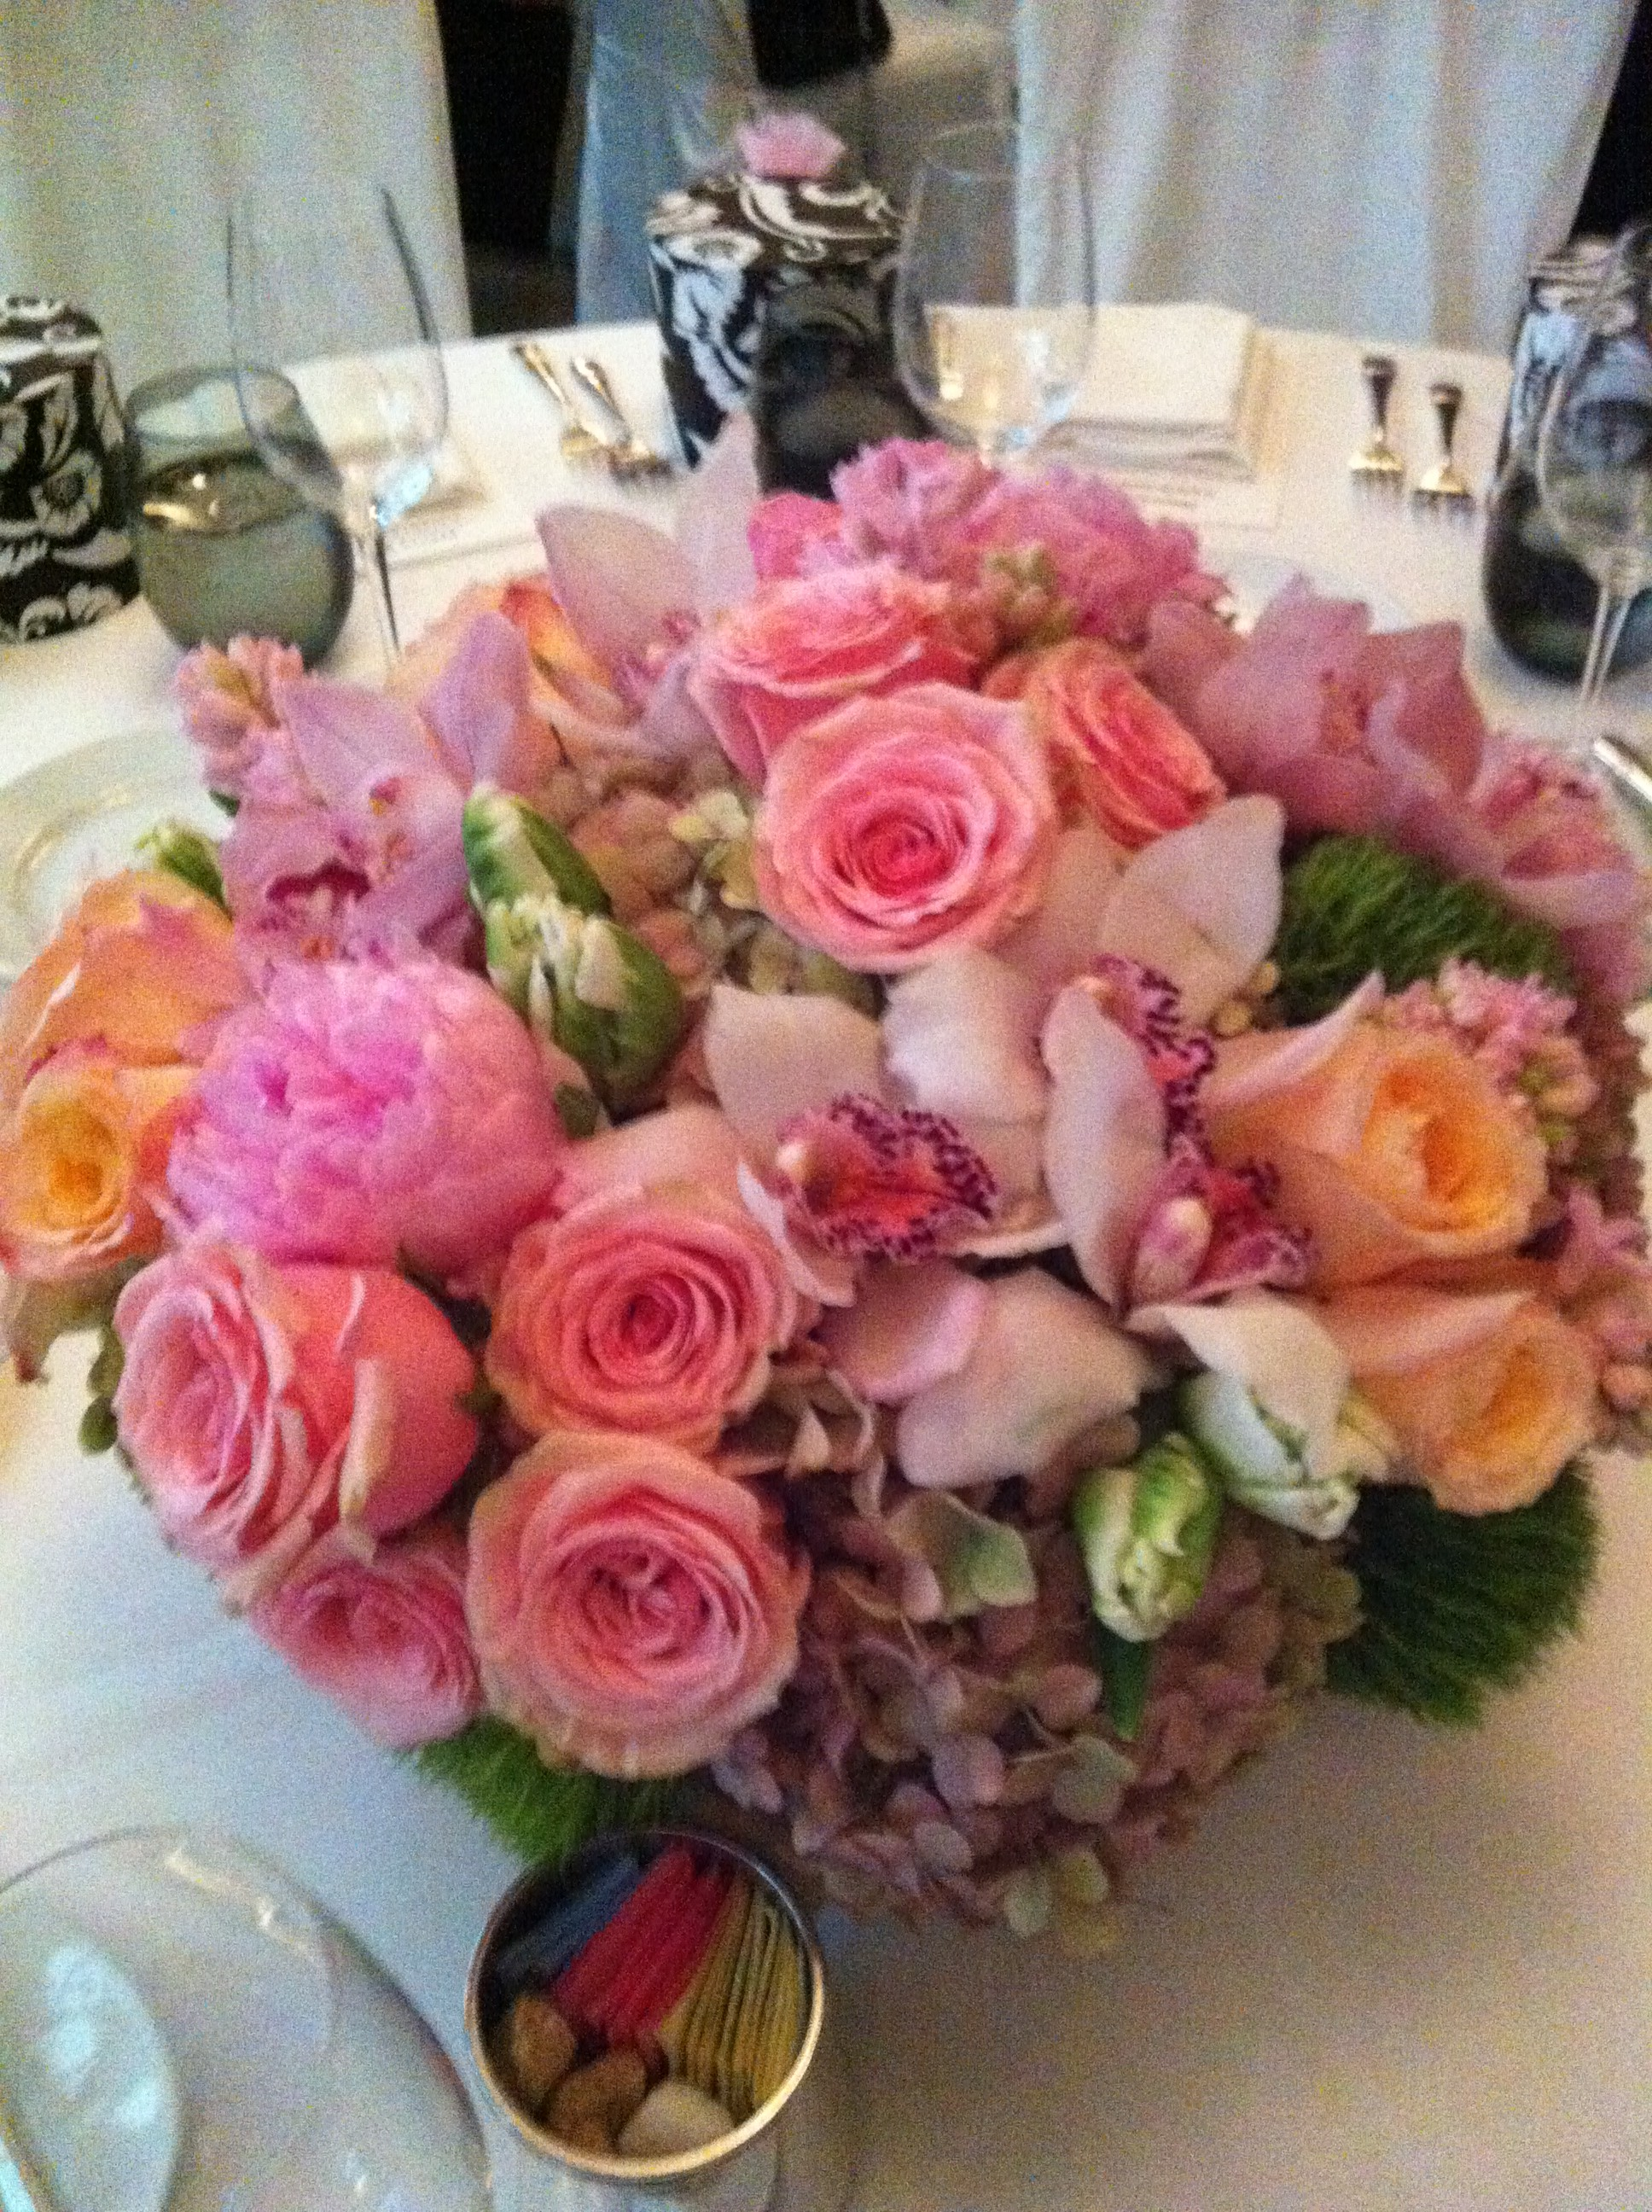 The beverly hills mom gorgeous birthday flowers for an awesome the beverly hills mom gorgeous birthday flowers for an awesome lady at spago beverly hills for nancy krasnes birthday dhlflorist Choice Image